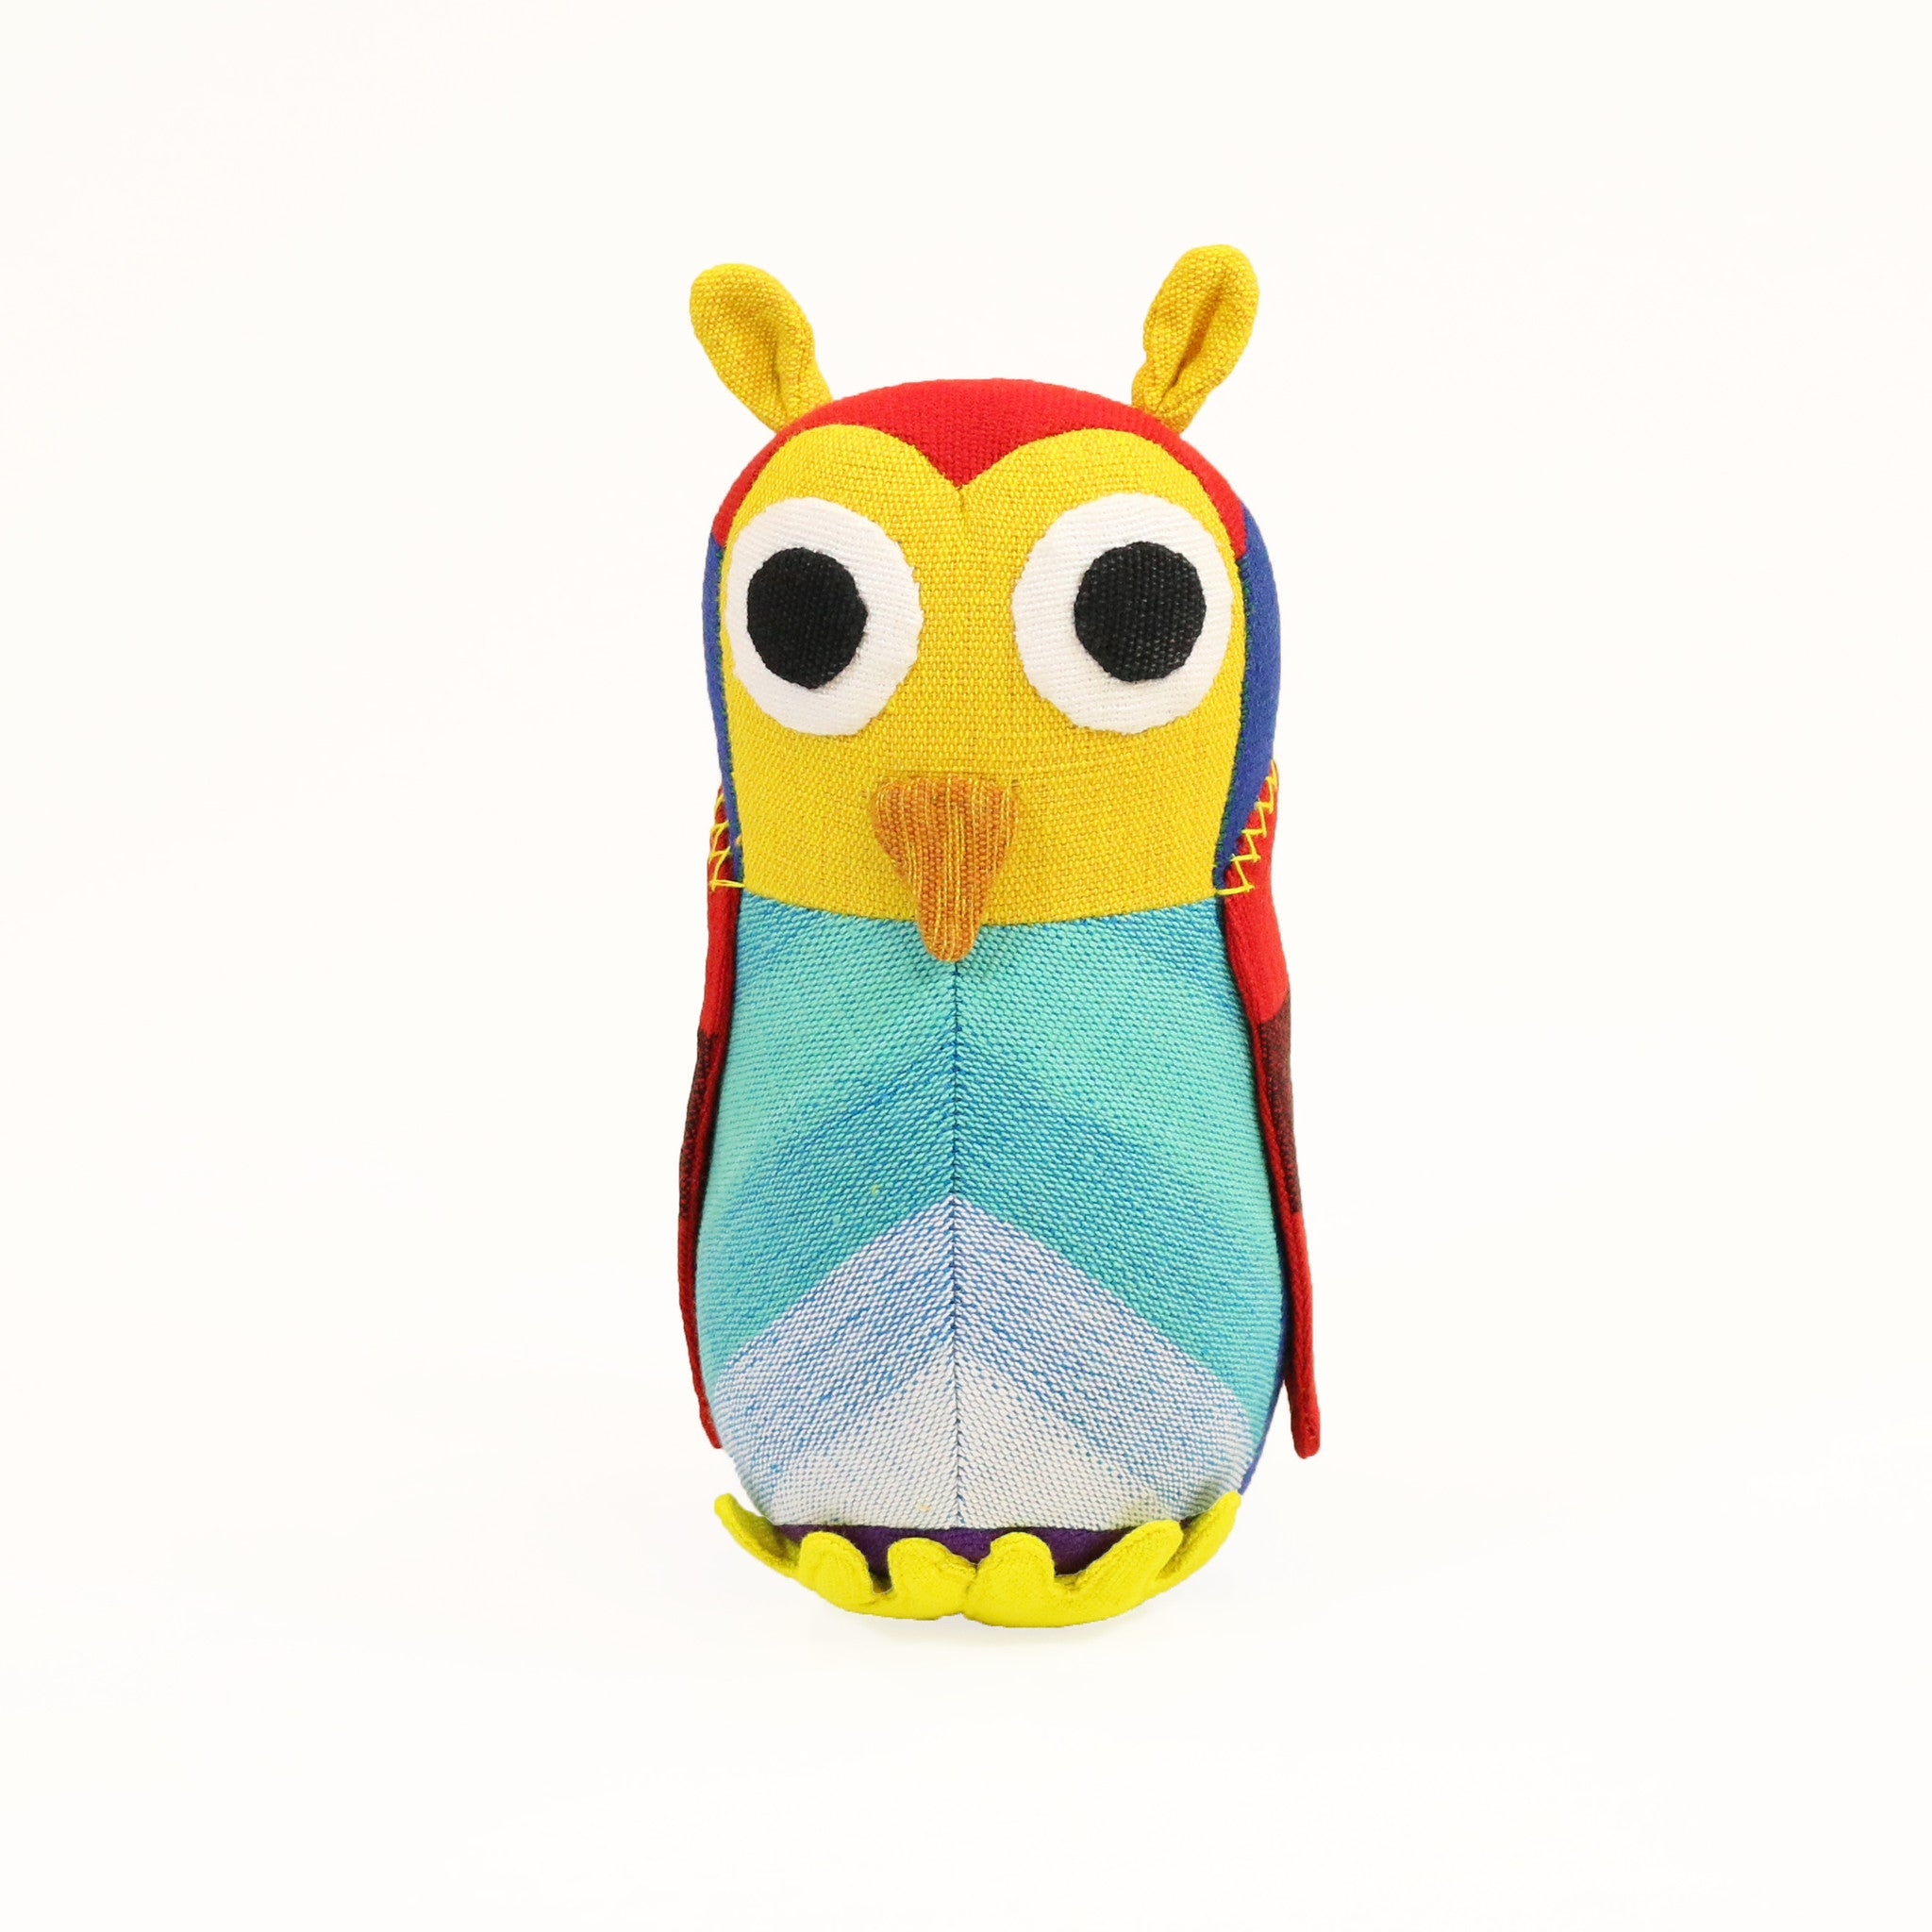 Huey, the Owl (small size)